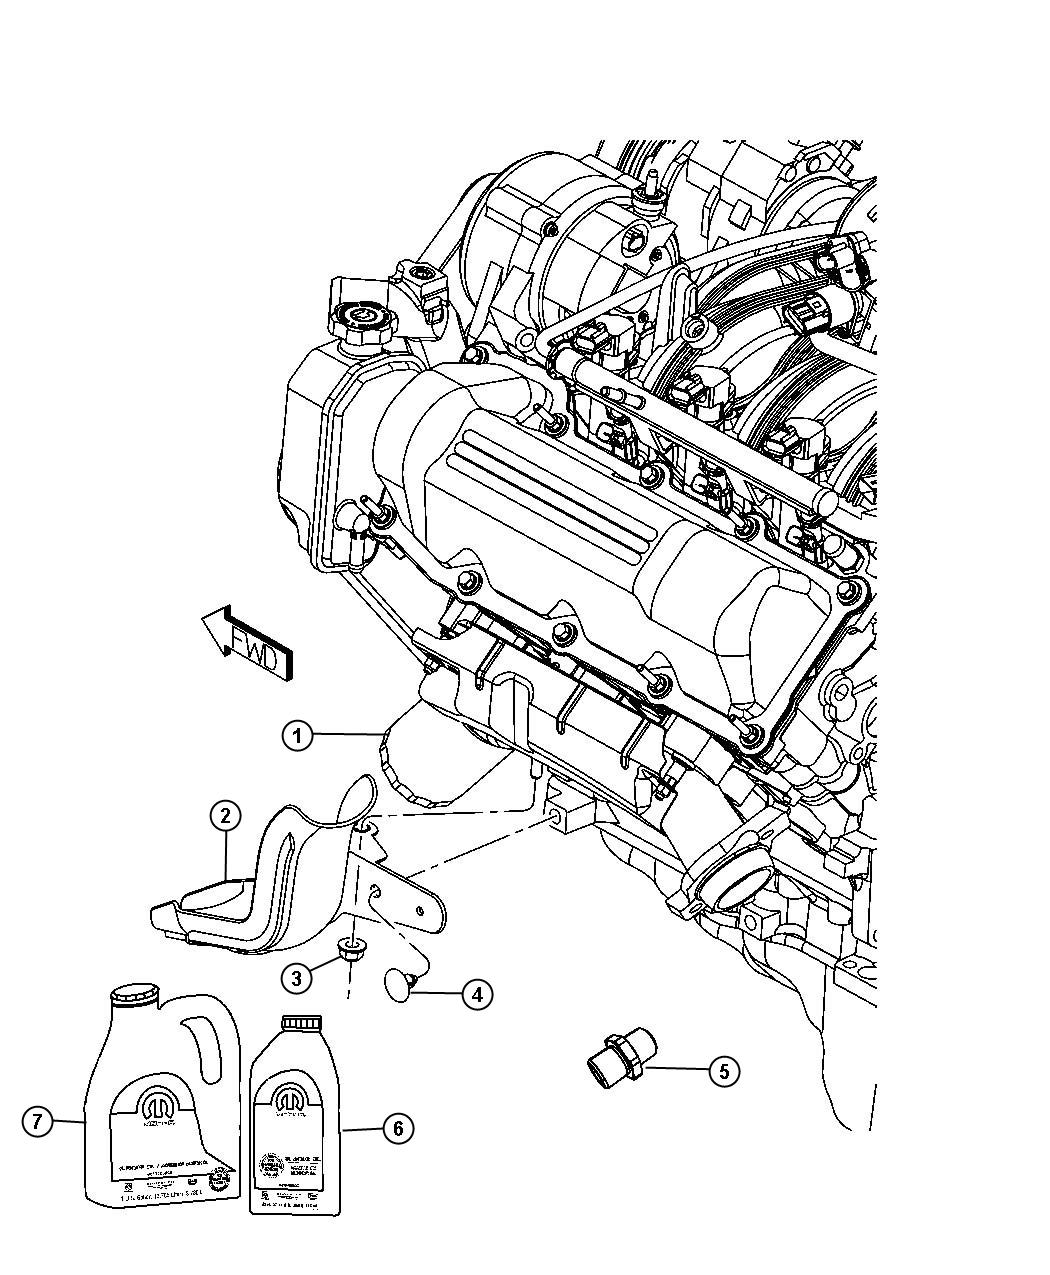 2012 Jeep Liberty Engine Oil, Engine Oil Filter, Adapter